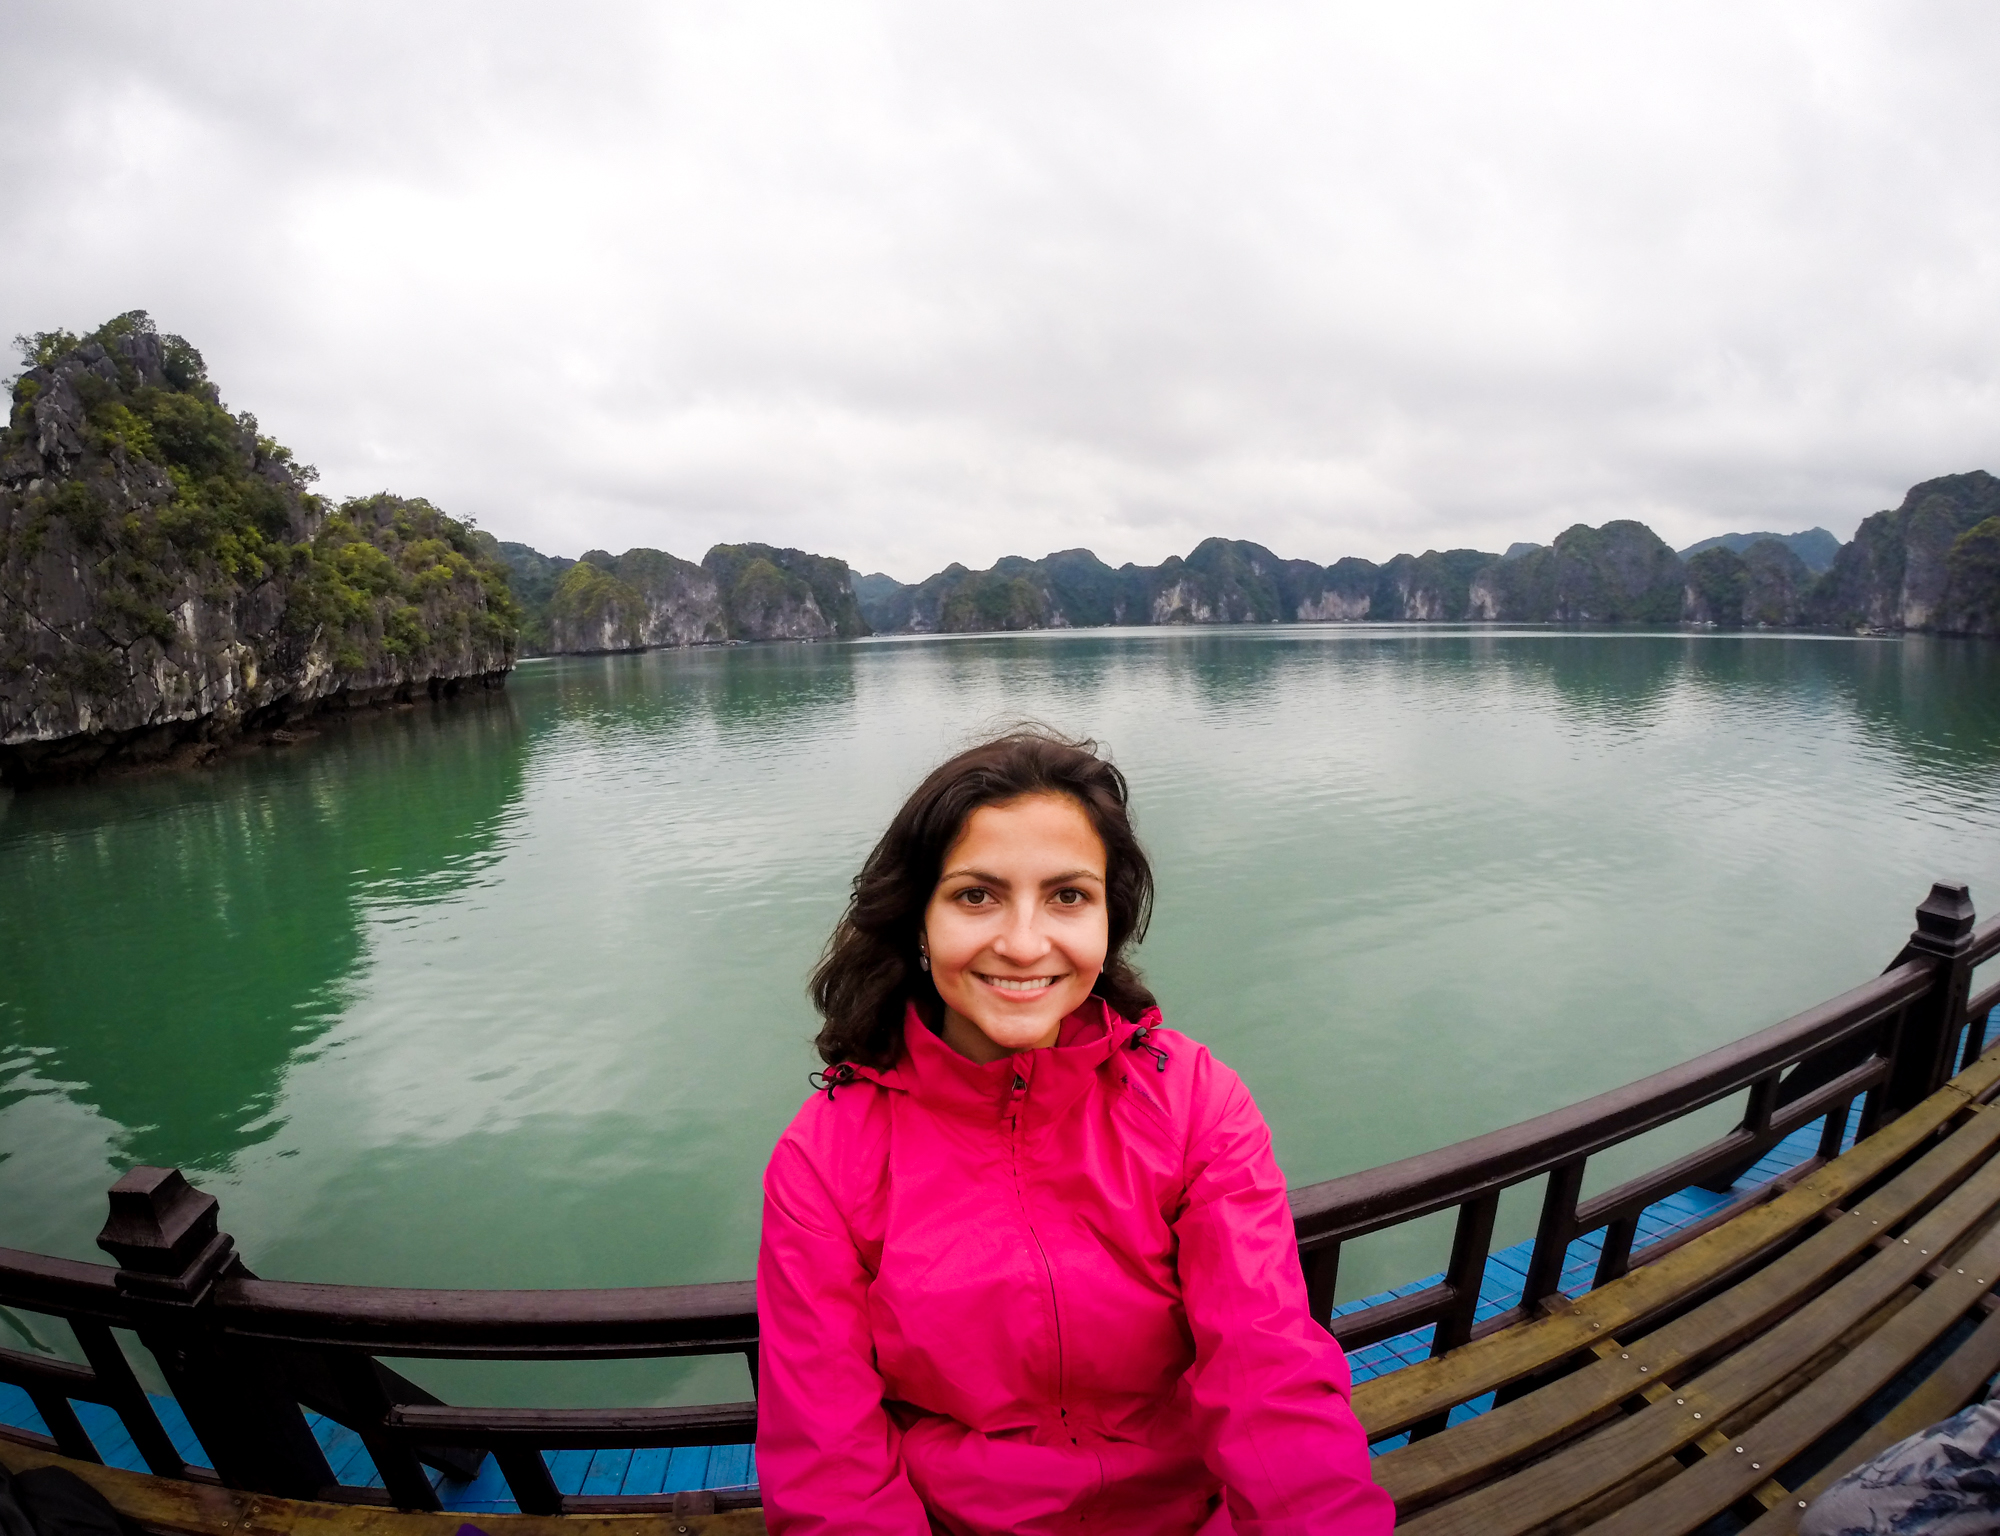 Elaine Villatoro - Live More, Travel More - Vietnam - Vietnã - Halong Bay - Castaway Islands - Vietnam Backpackers - Hanoi Backpackers - Beach - Praia - Party Cruise